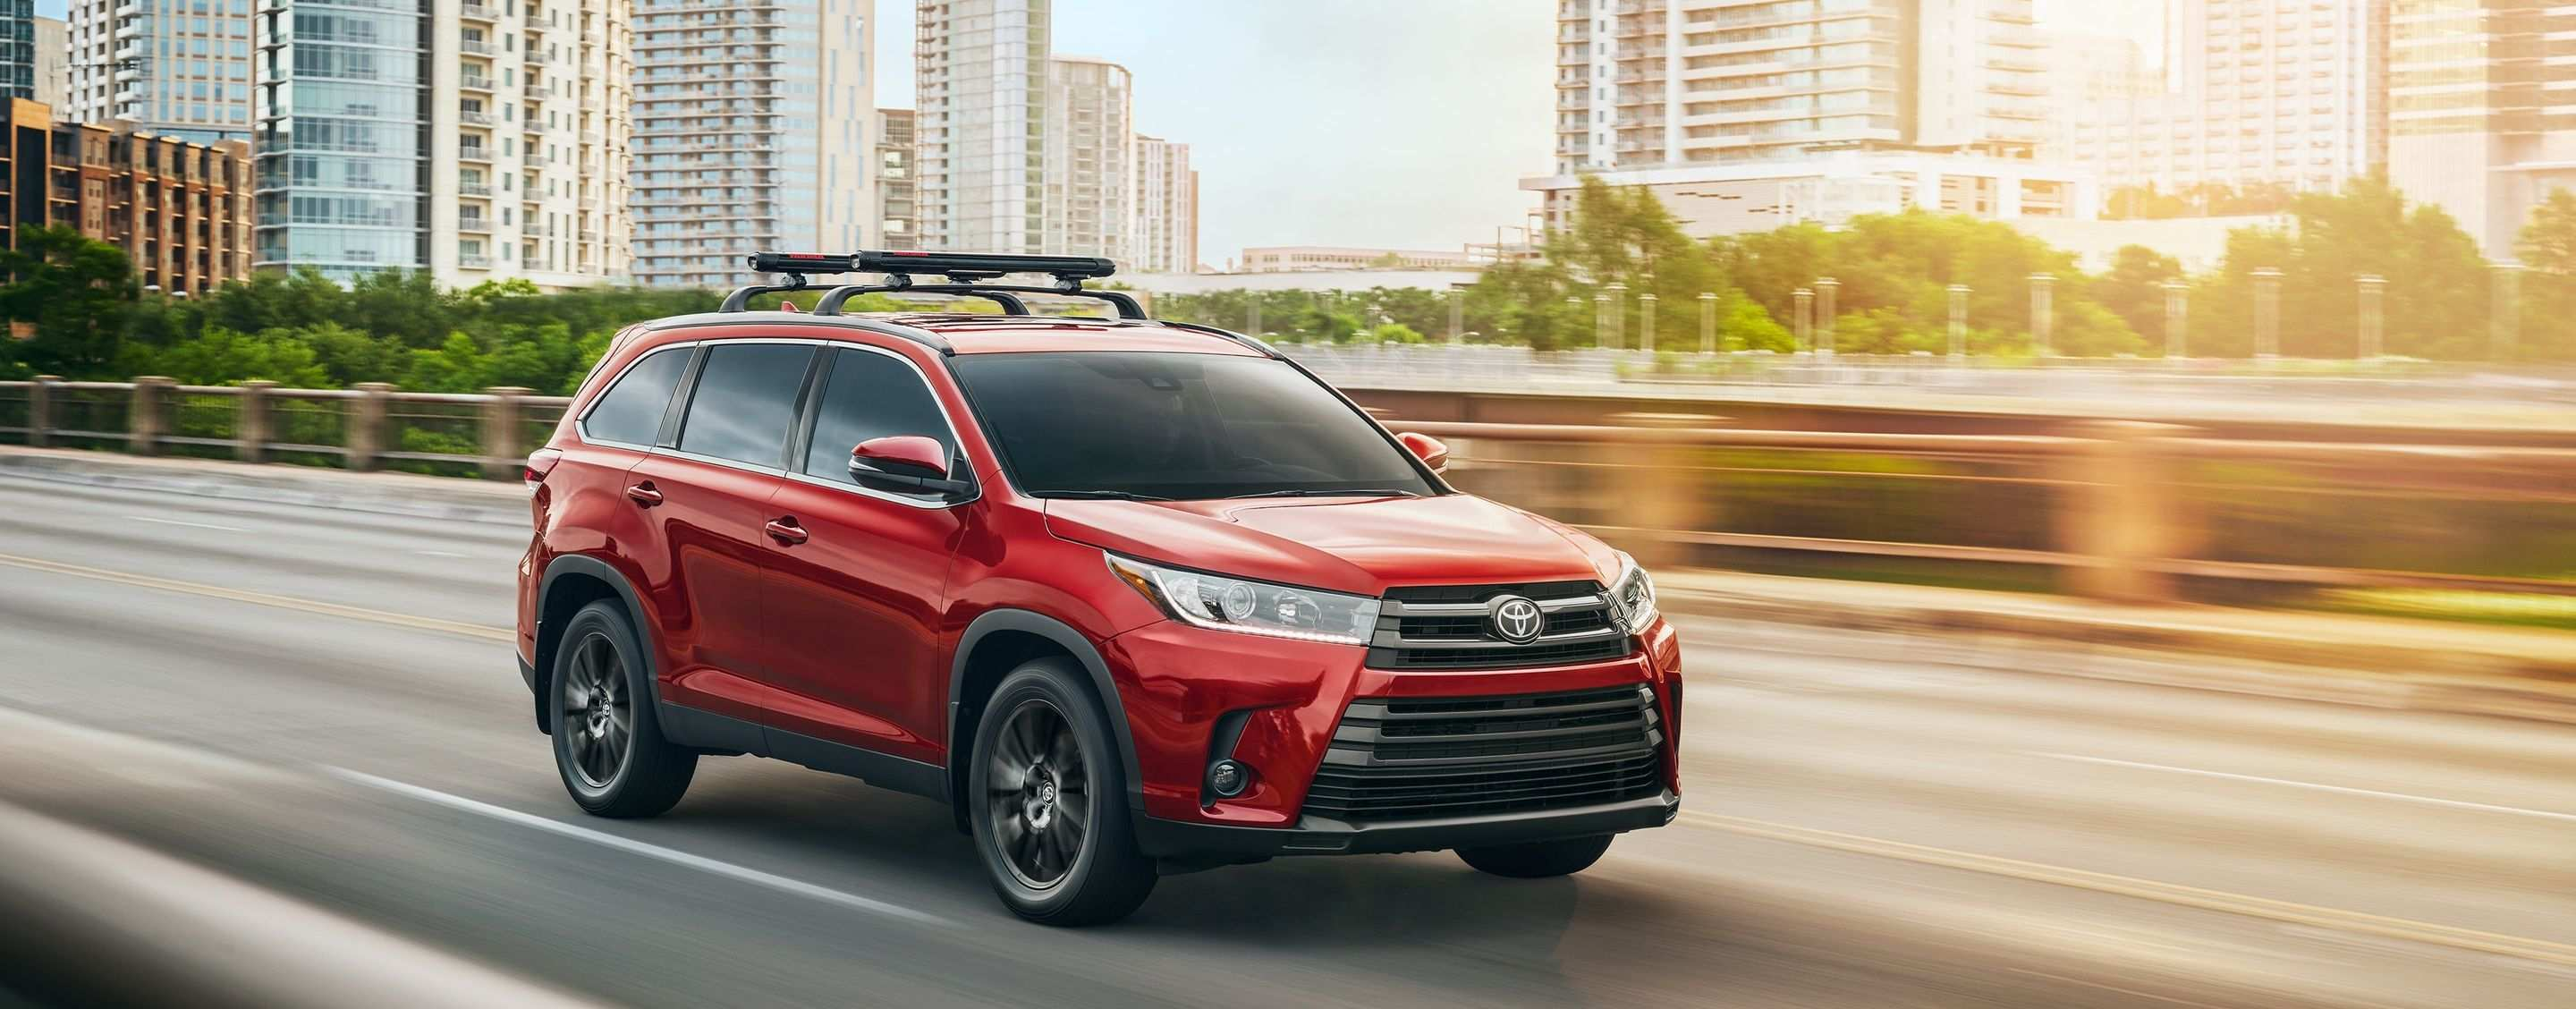 39 The Best Toyota Ia 2019 Reviews